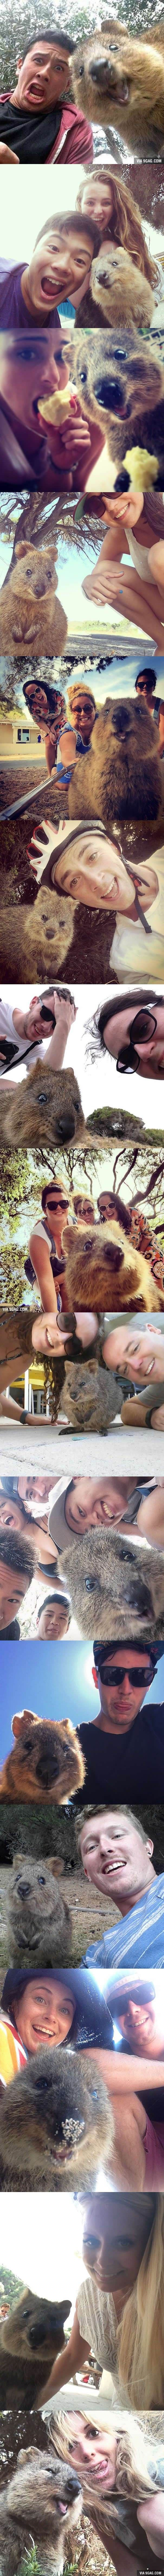 Quokka Selfie Is Cutest Trend In Australia Right Now! So cute you can't stand It! Enjoy RushWorld boards, AWE FACTOR, UNPREDICTABLE WOMEN HAUTE COUTURE and MOOD BUSTERS. See you at RushWorld on Pinterest!